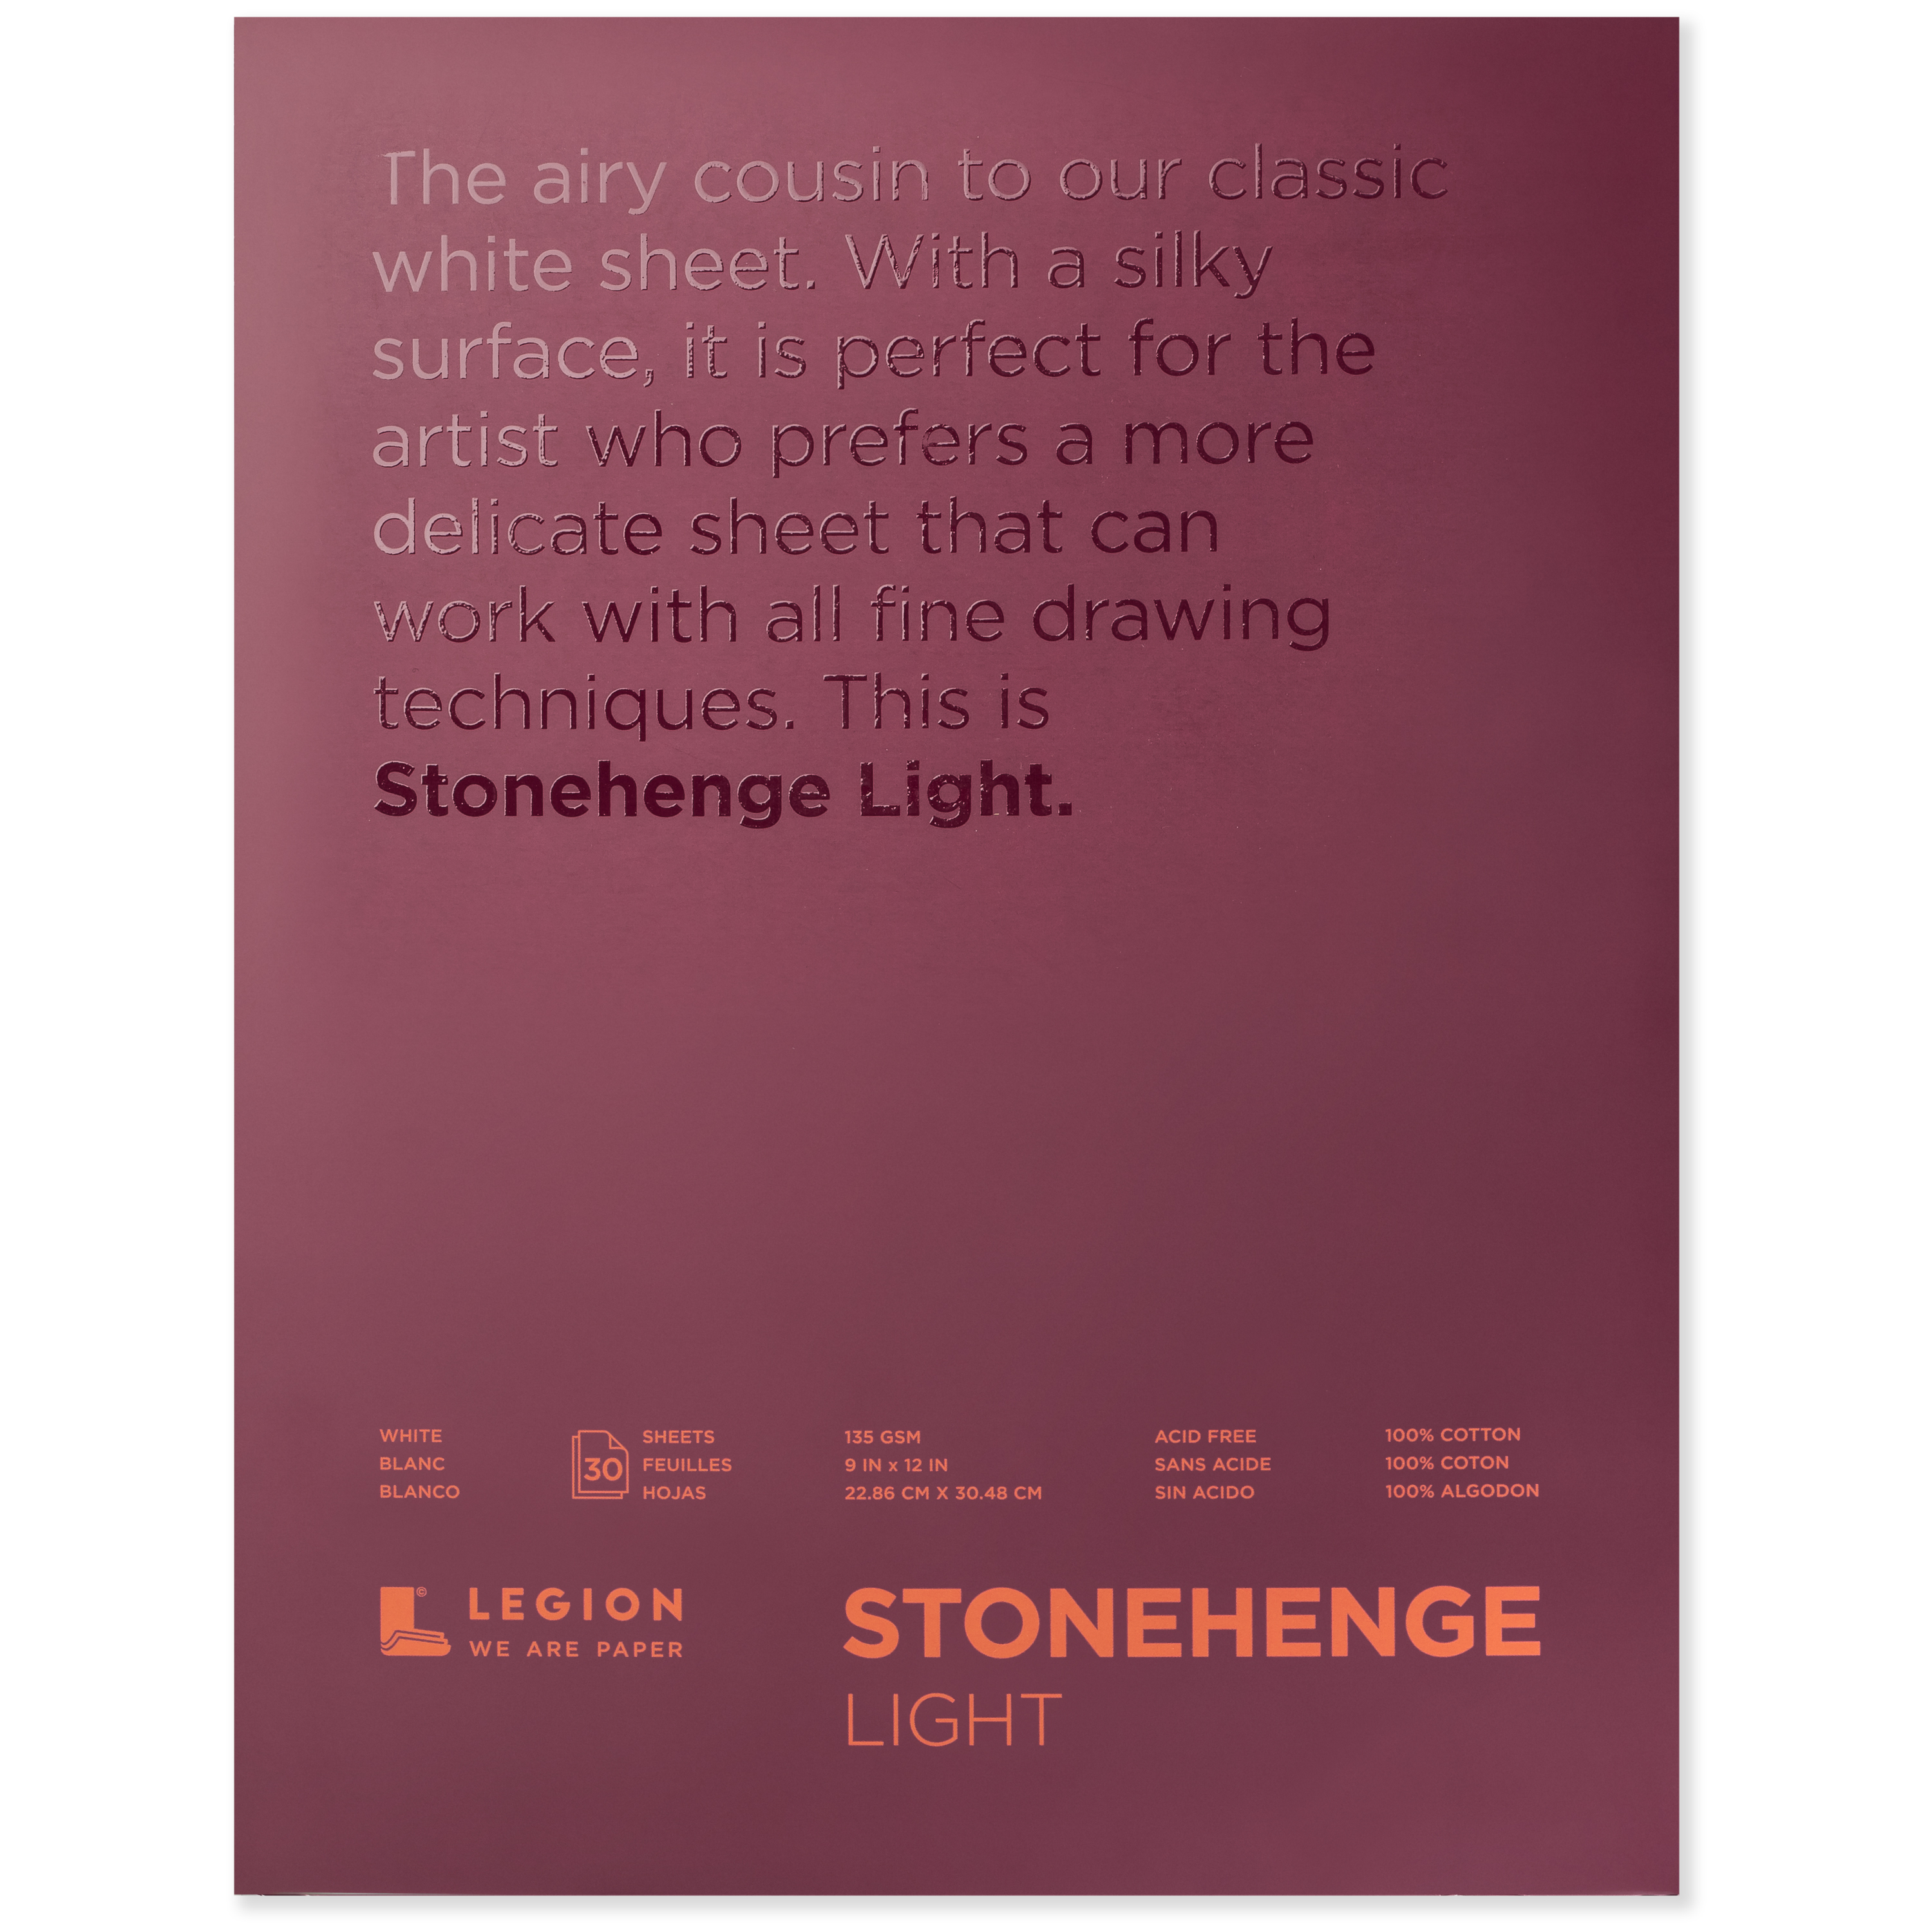 Stonehenge Light